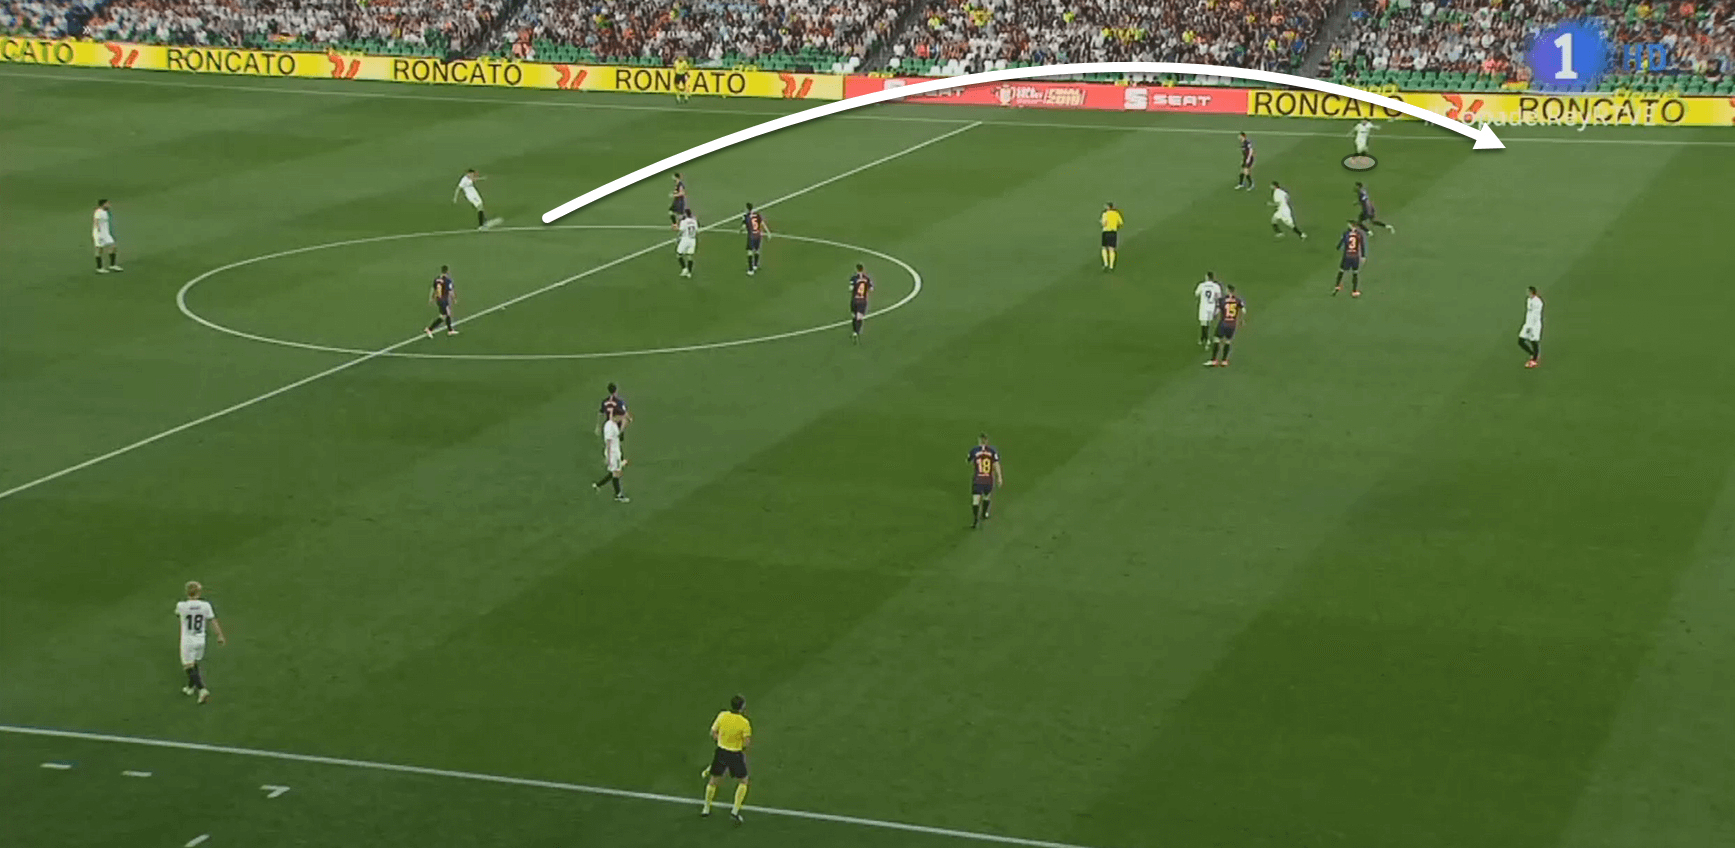 La Liga 2019/20: Barcelona vs Valencia - tactical preview tactics